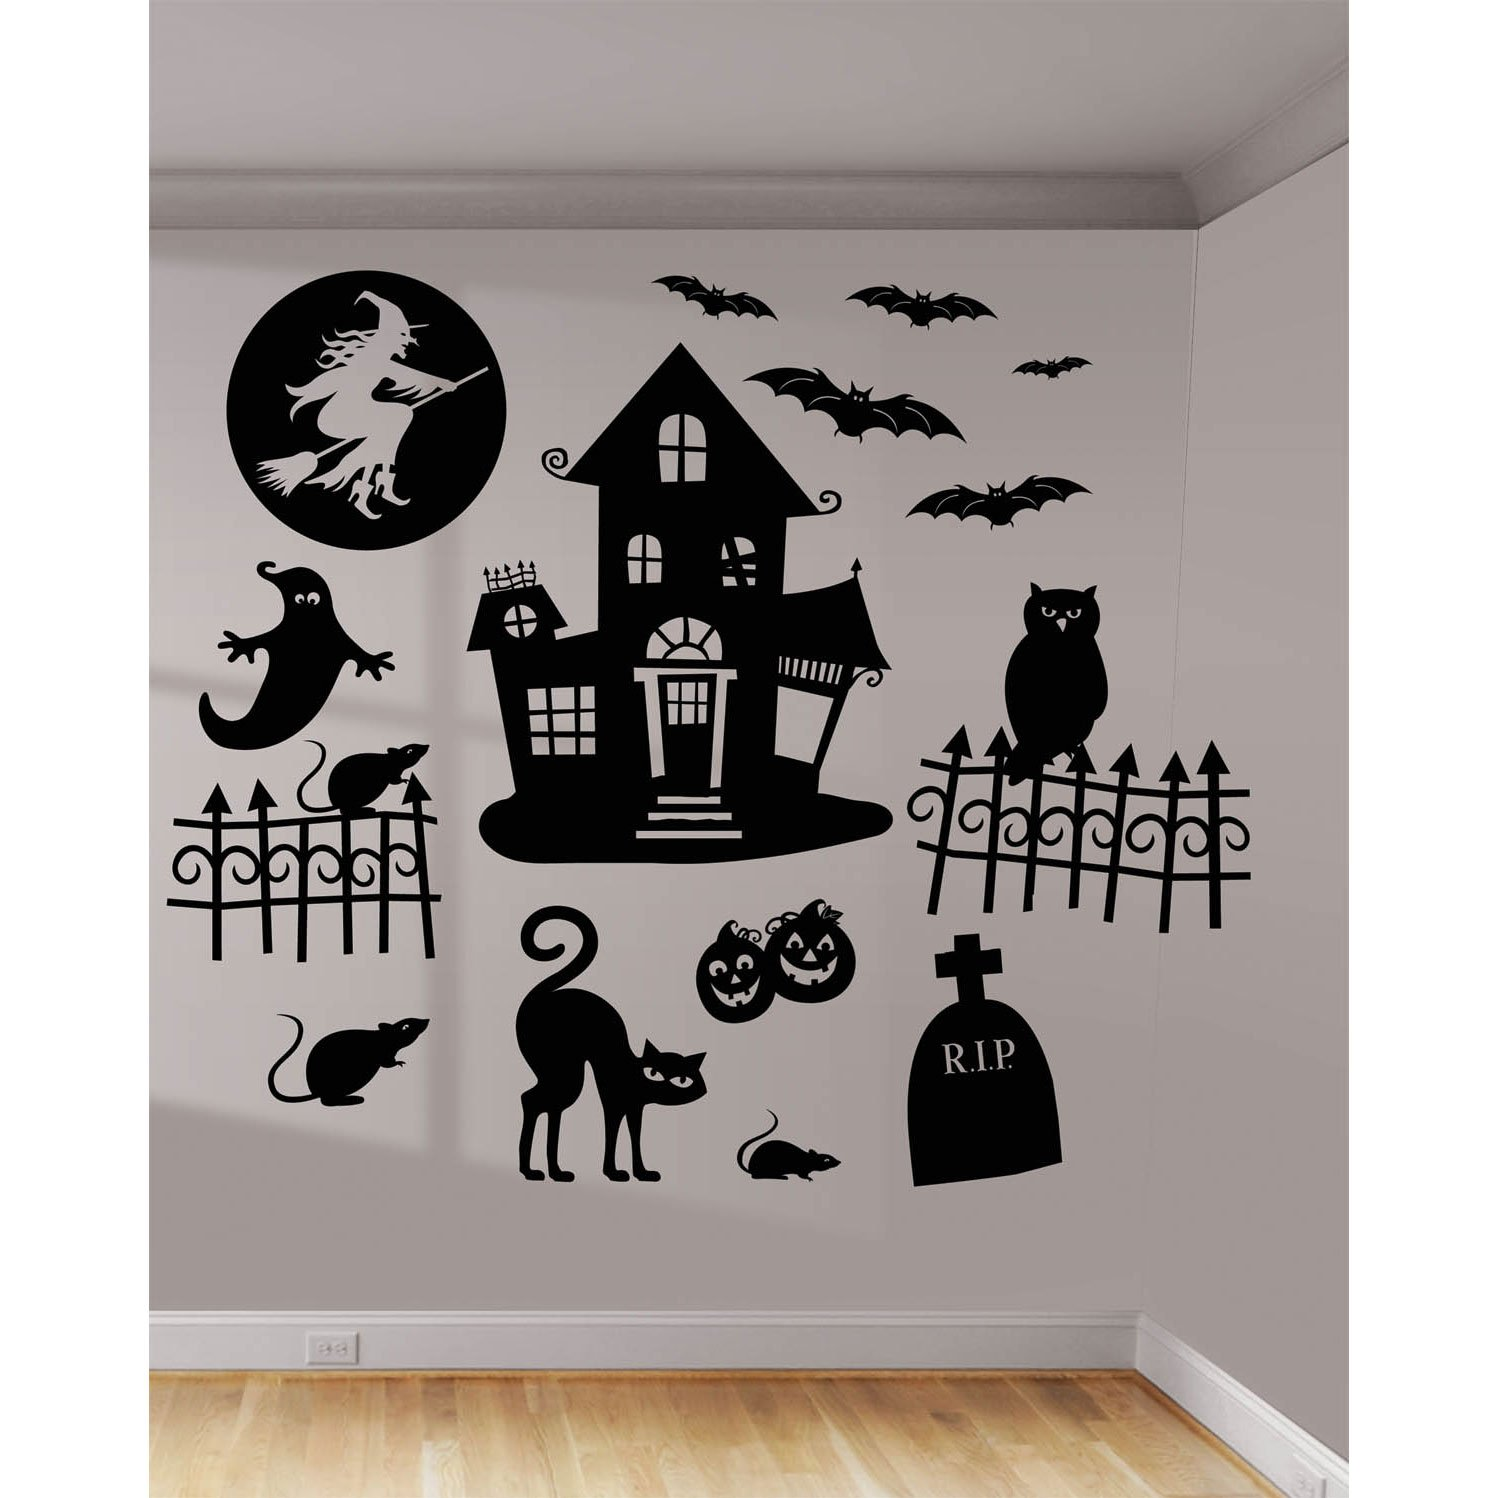 haunted house ideas room design html with Halloween Wall Sticker Decals on Music Memorabilia Gothic Decor Meg Matthews Home Rock N Roll Is also 6999c231c3597527 besides The Real Life Lego Movie Father Son 11 Spend Five Years 1 000 Building Entire Miniature Town Airport Beach Skate Park Toy Bricks Spare Room likewise Halloween Wall Sticker Decals likewise Man Feared D Lose Wonderland Talliston House Essex Spent 25 Years 700 000 Transforming Losing Job Takes Market Strangers Raised Cash Help It.